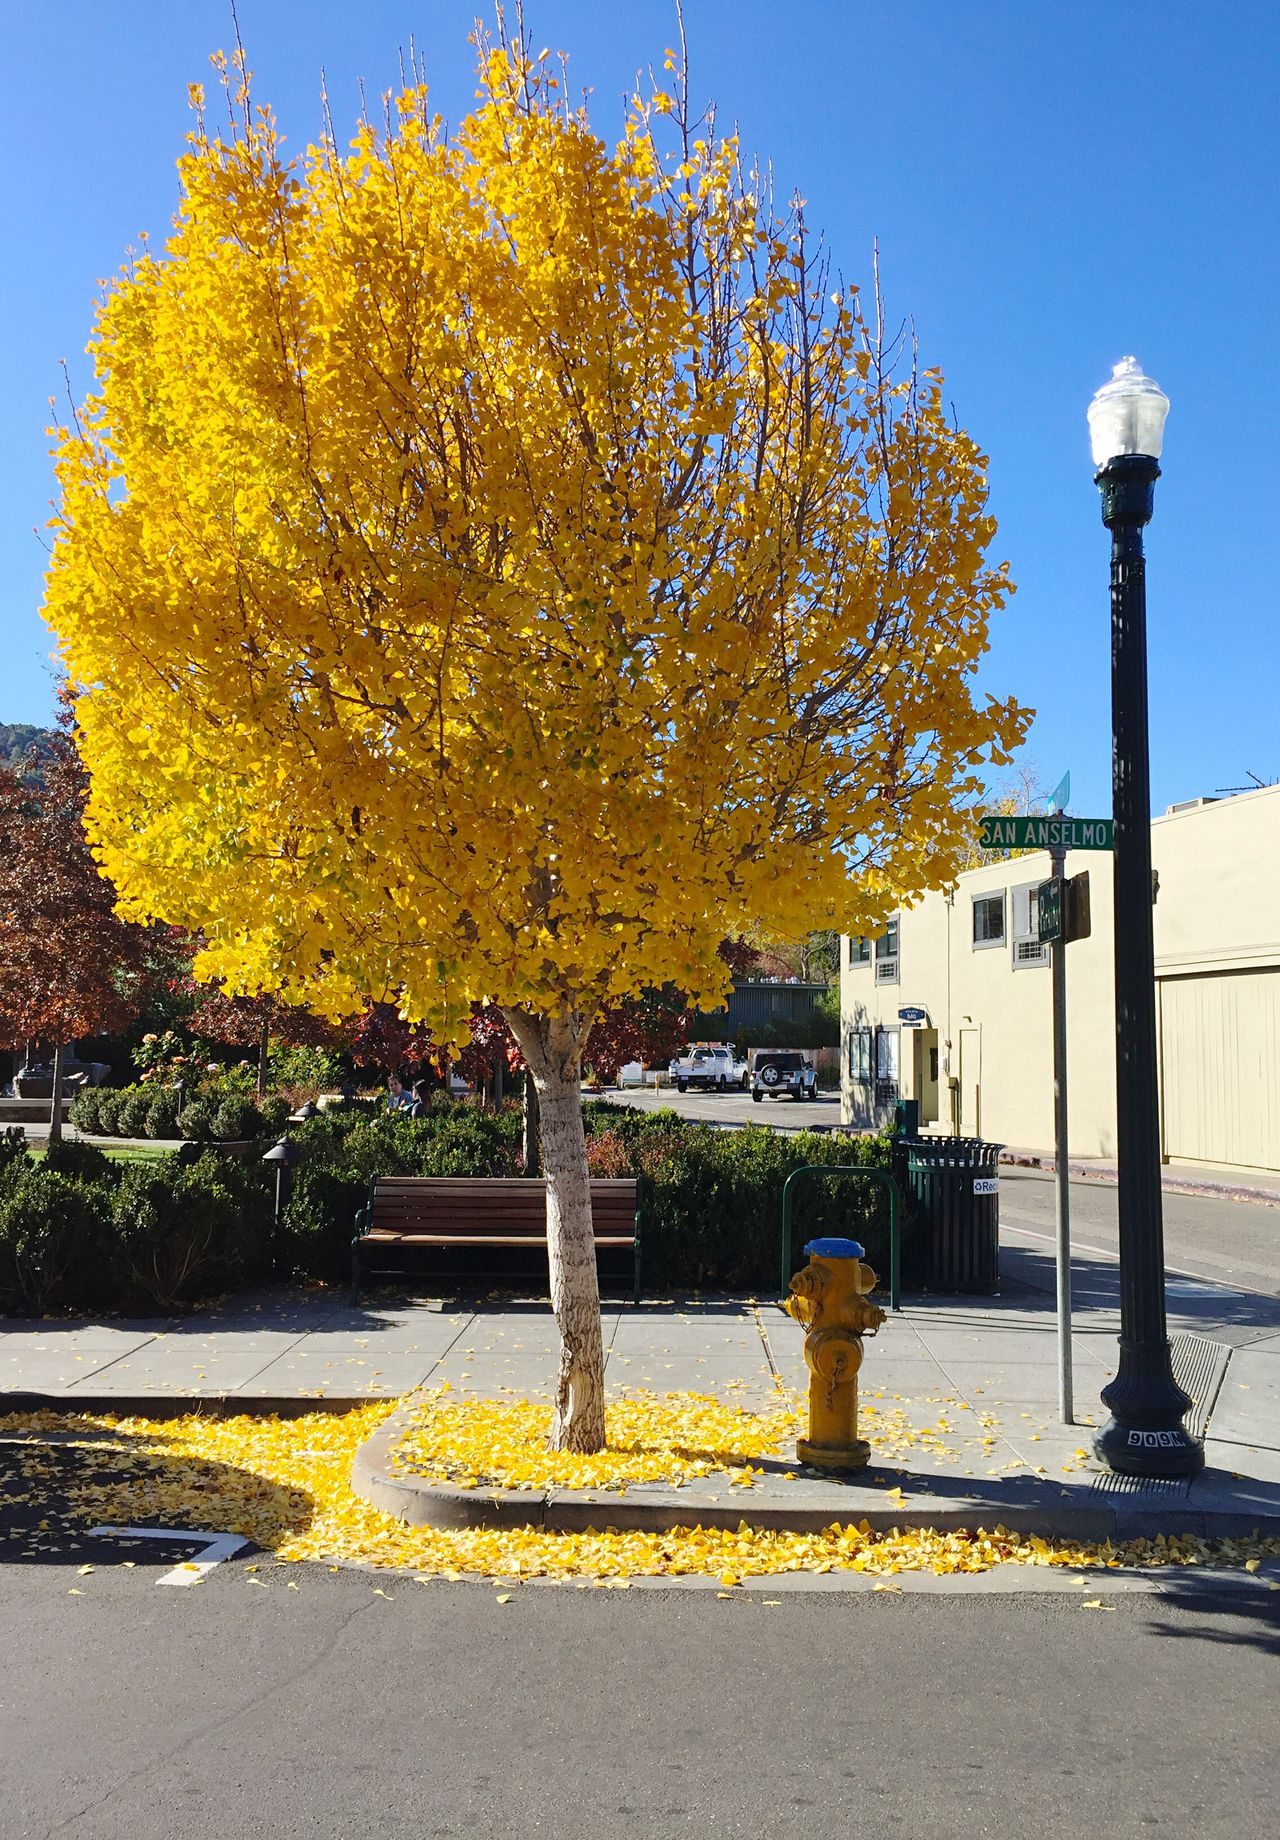 """Coordinated Colors"" A city fire hydrant harmoniously coordinates with a tree dressed in glorious yellow Autumn leaves and the crisp, clear blue sky, along San Anselmo Ave. in San Anselmo, California, USA. Firehydrant San Anselmo Marin County CA Golden Leaves Autumn Autumn Colors Autumn🍁🍁🍁 Autumn Leaves Fall Beauty Fall Colors Autumn 2015 Colors Of Autumn Autumn Collection Goldenleaves"